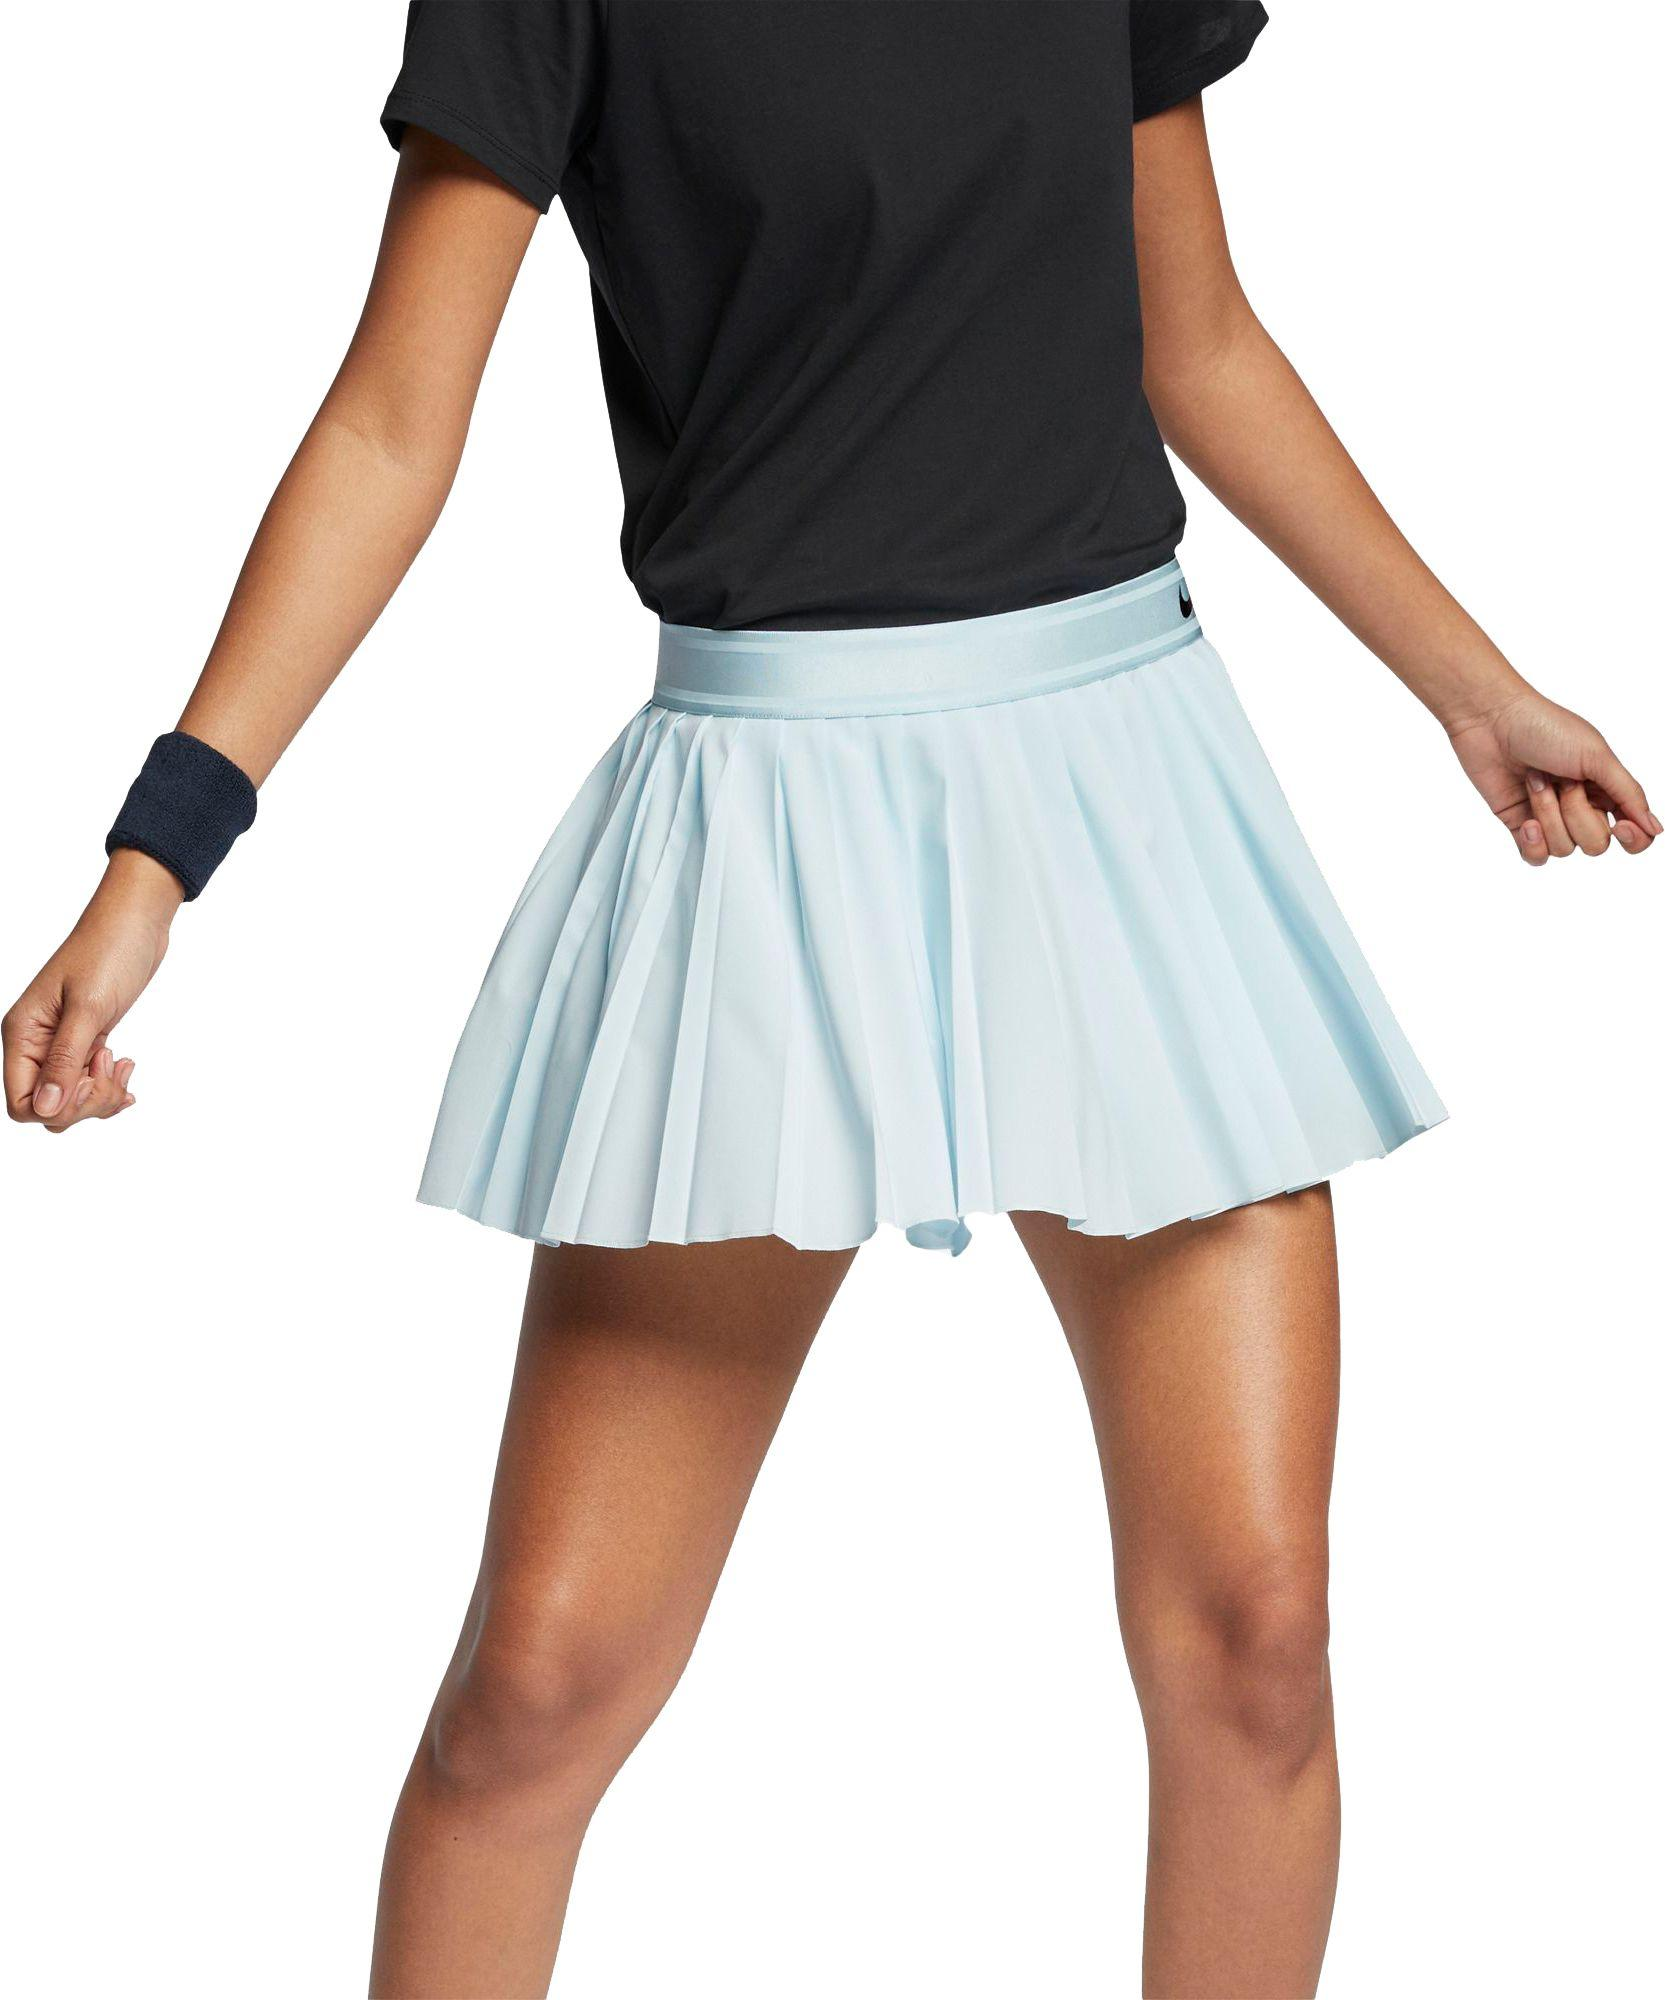 cc8caf370a Lyst - Nike Court Victory Tennis Skirt in Blue